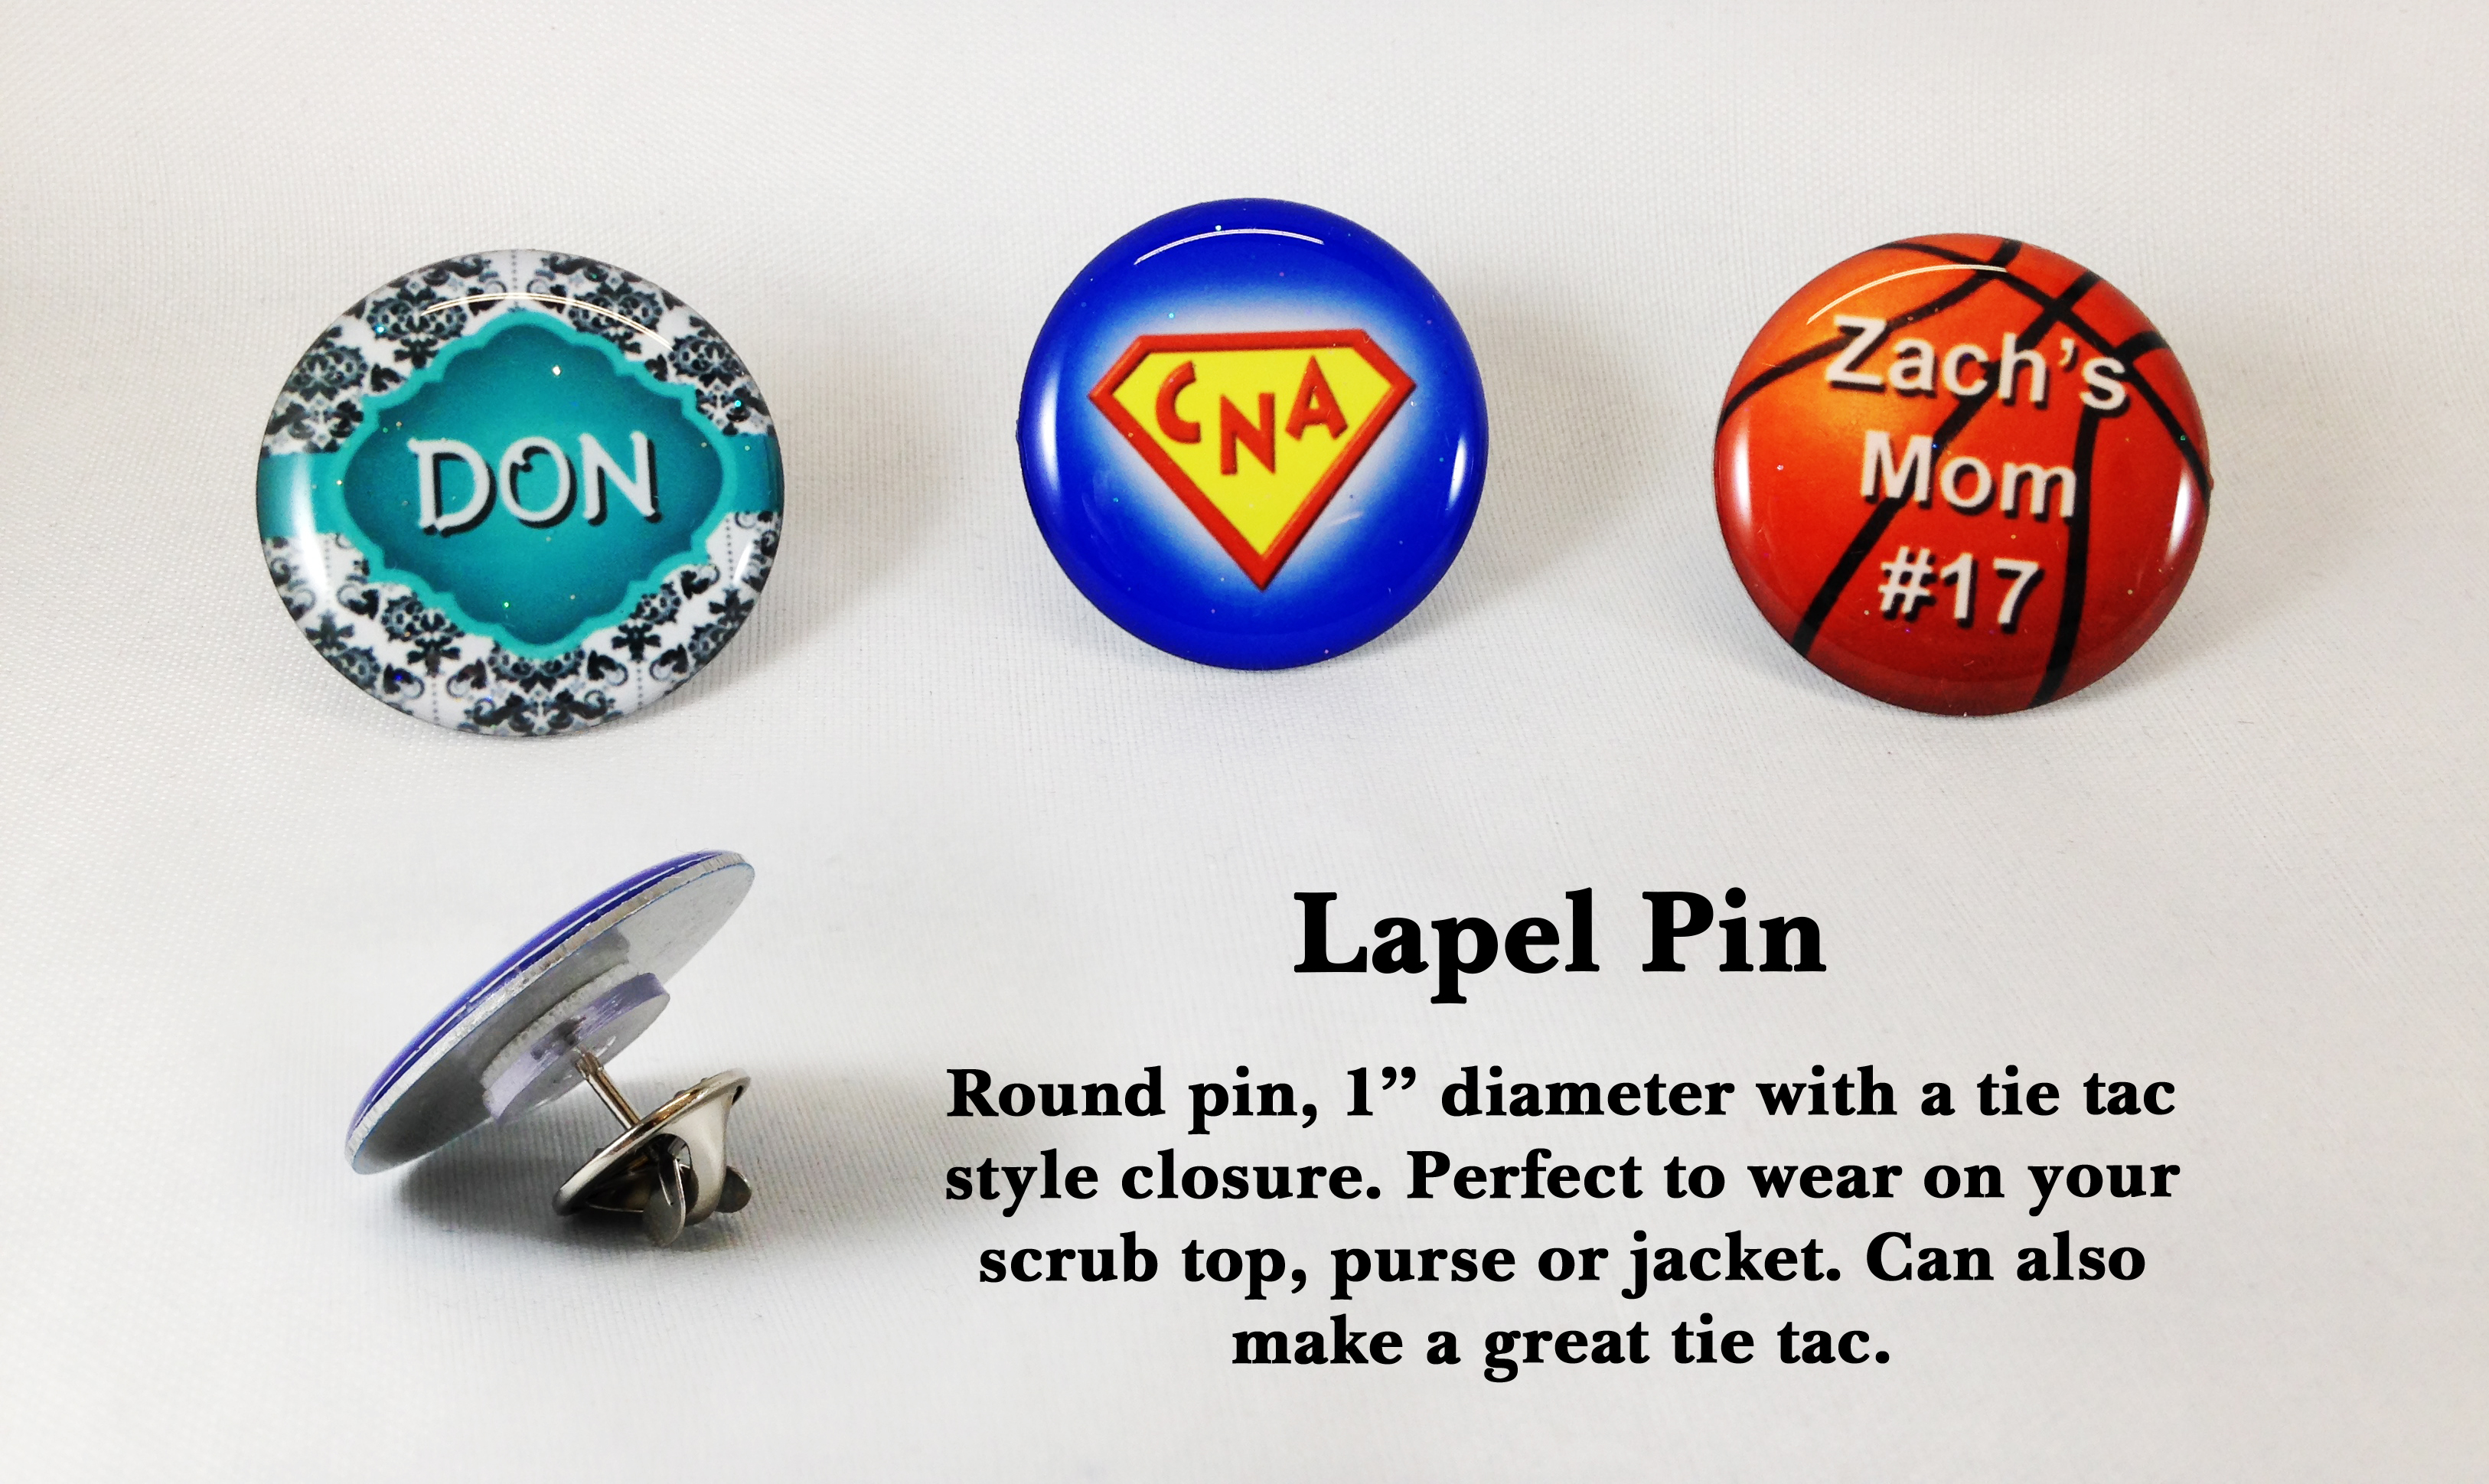 lapel-pin-collage.jpg